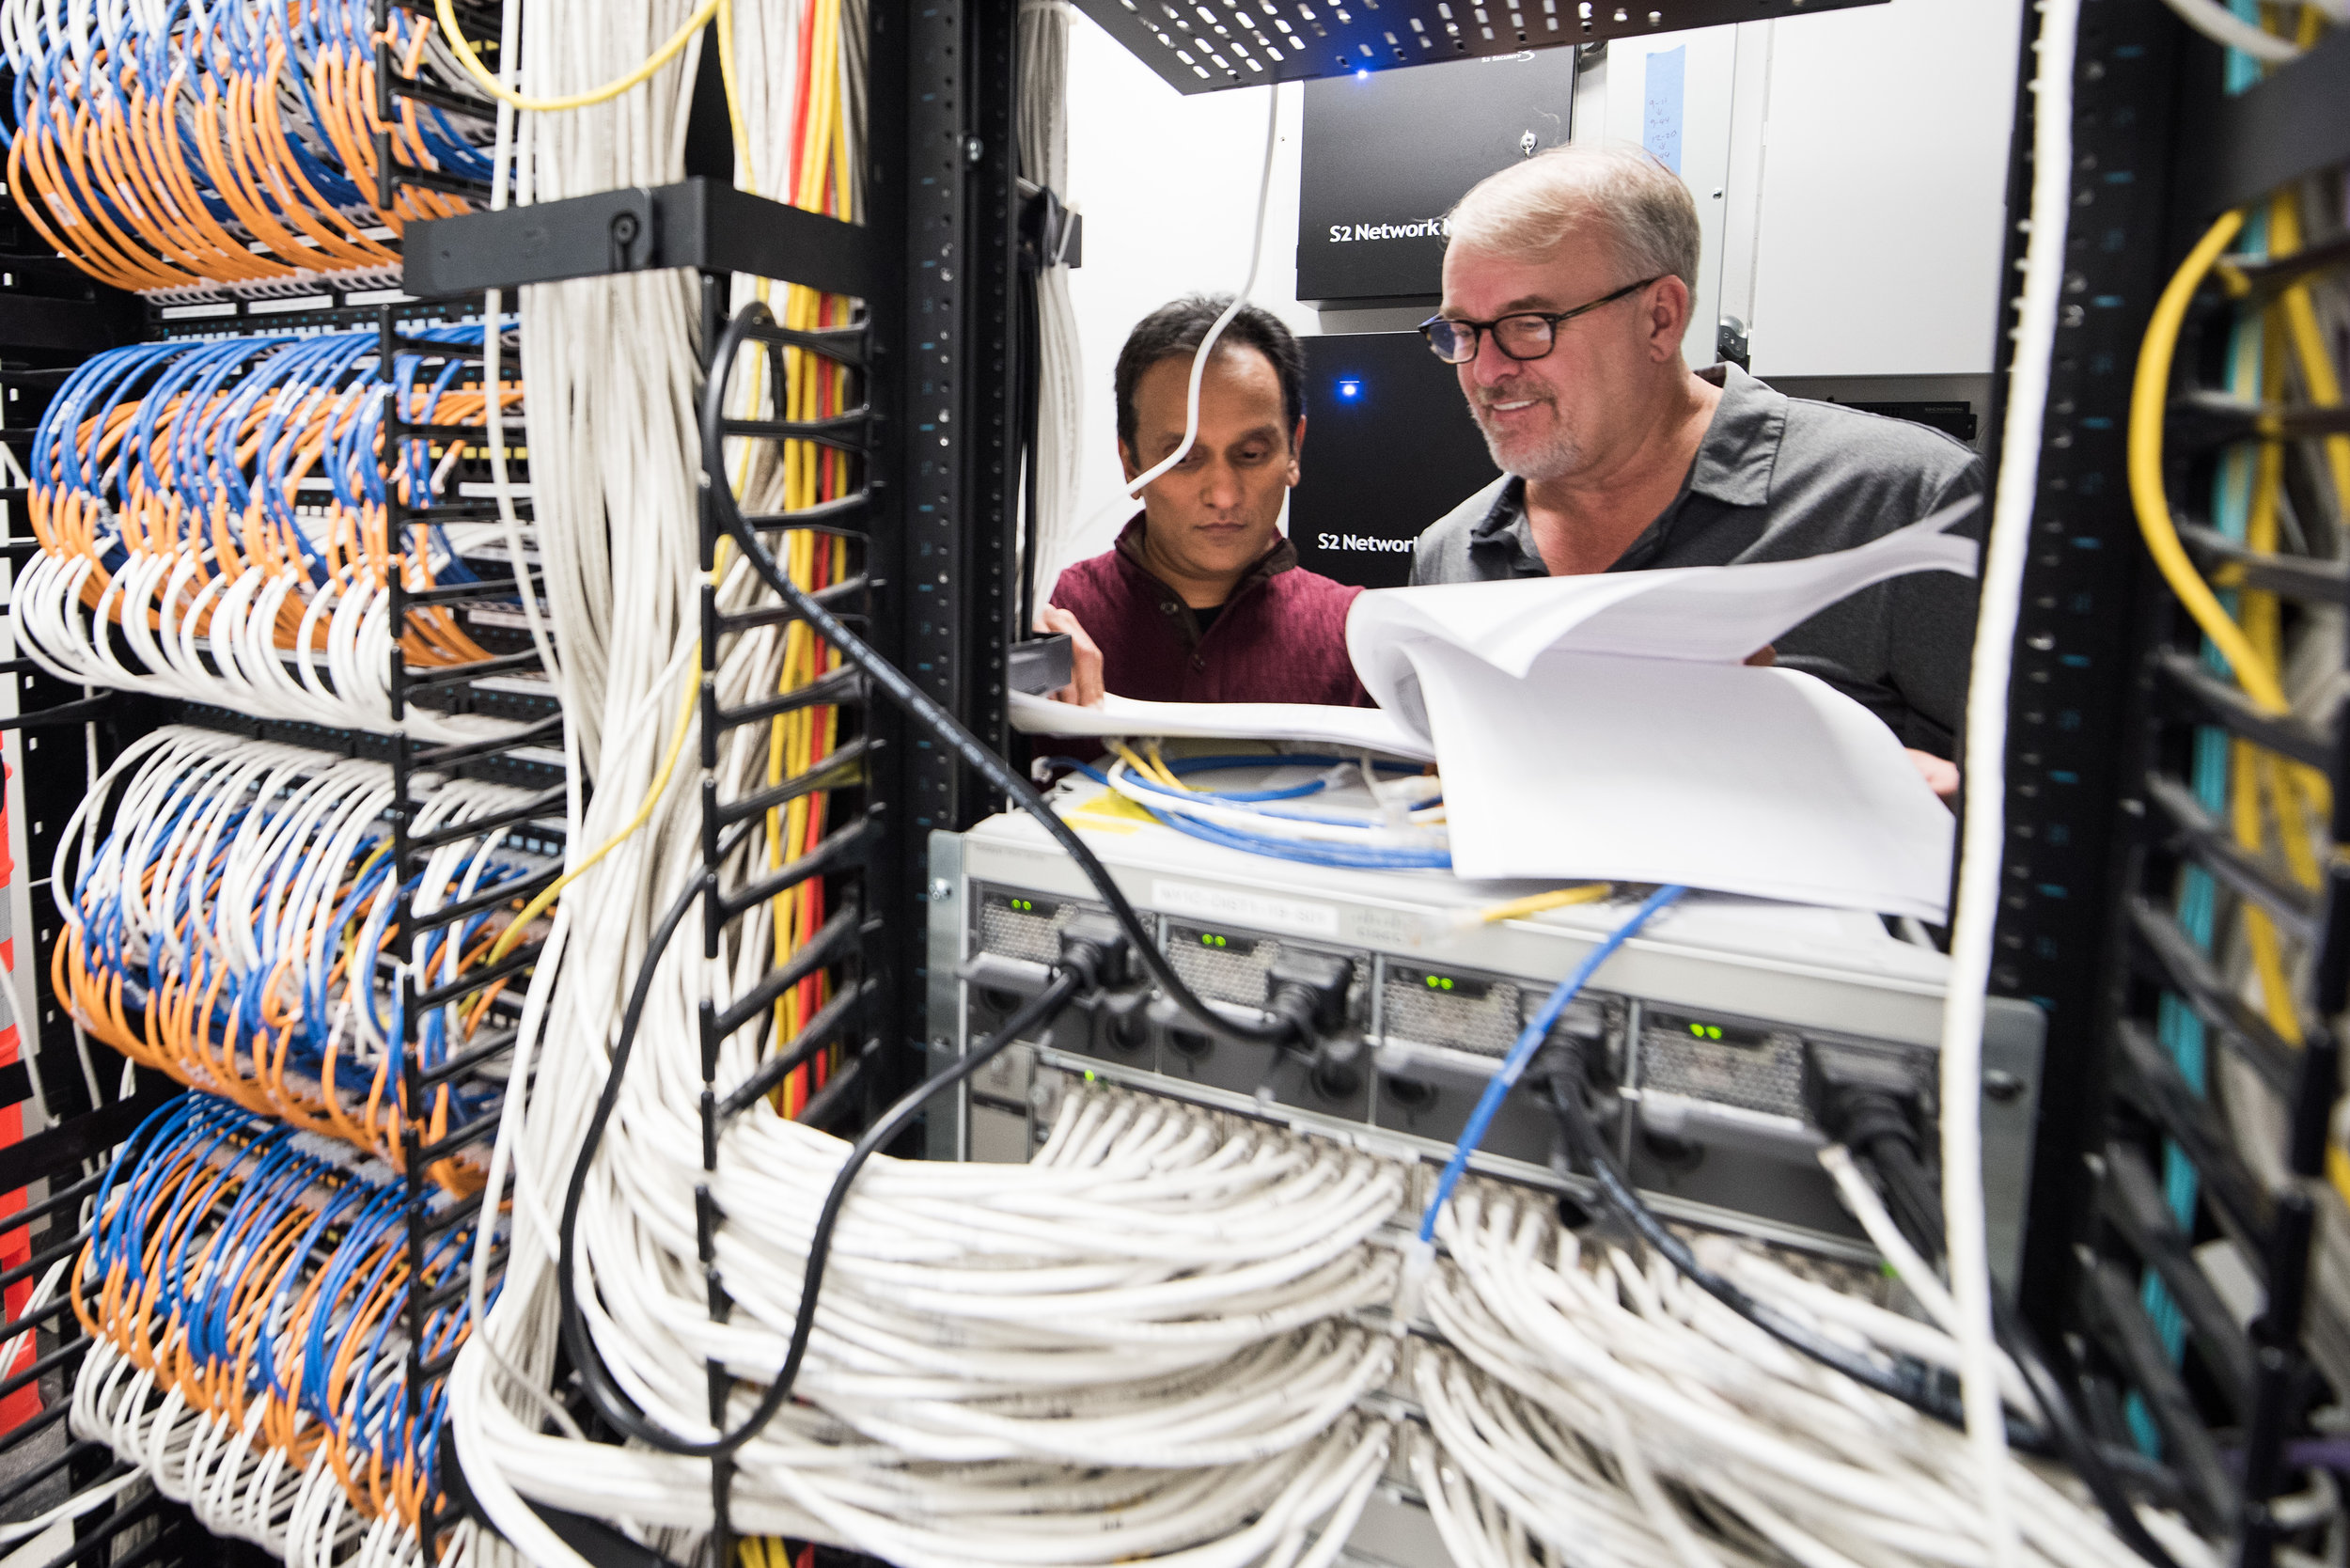 Two Liquidnet infosec experts work in the server room